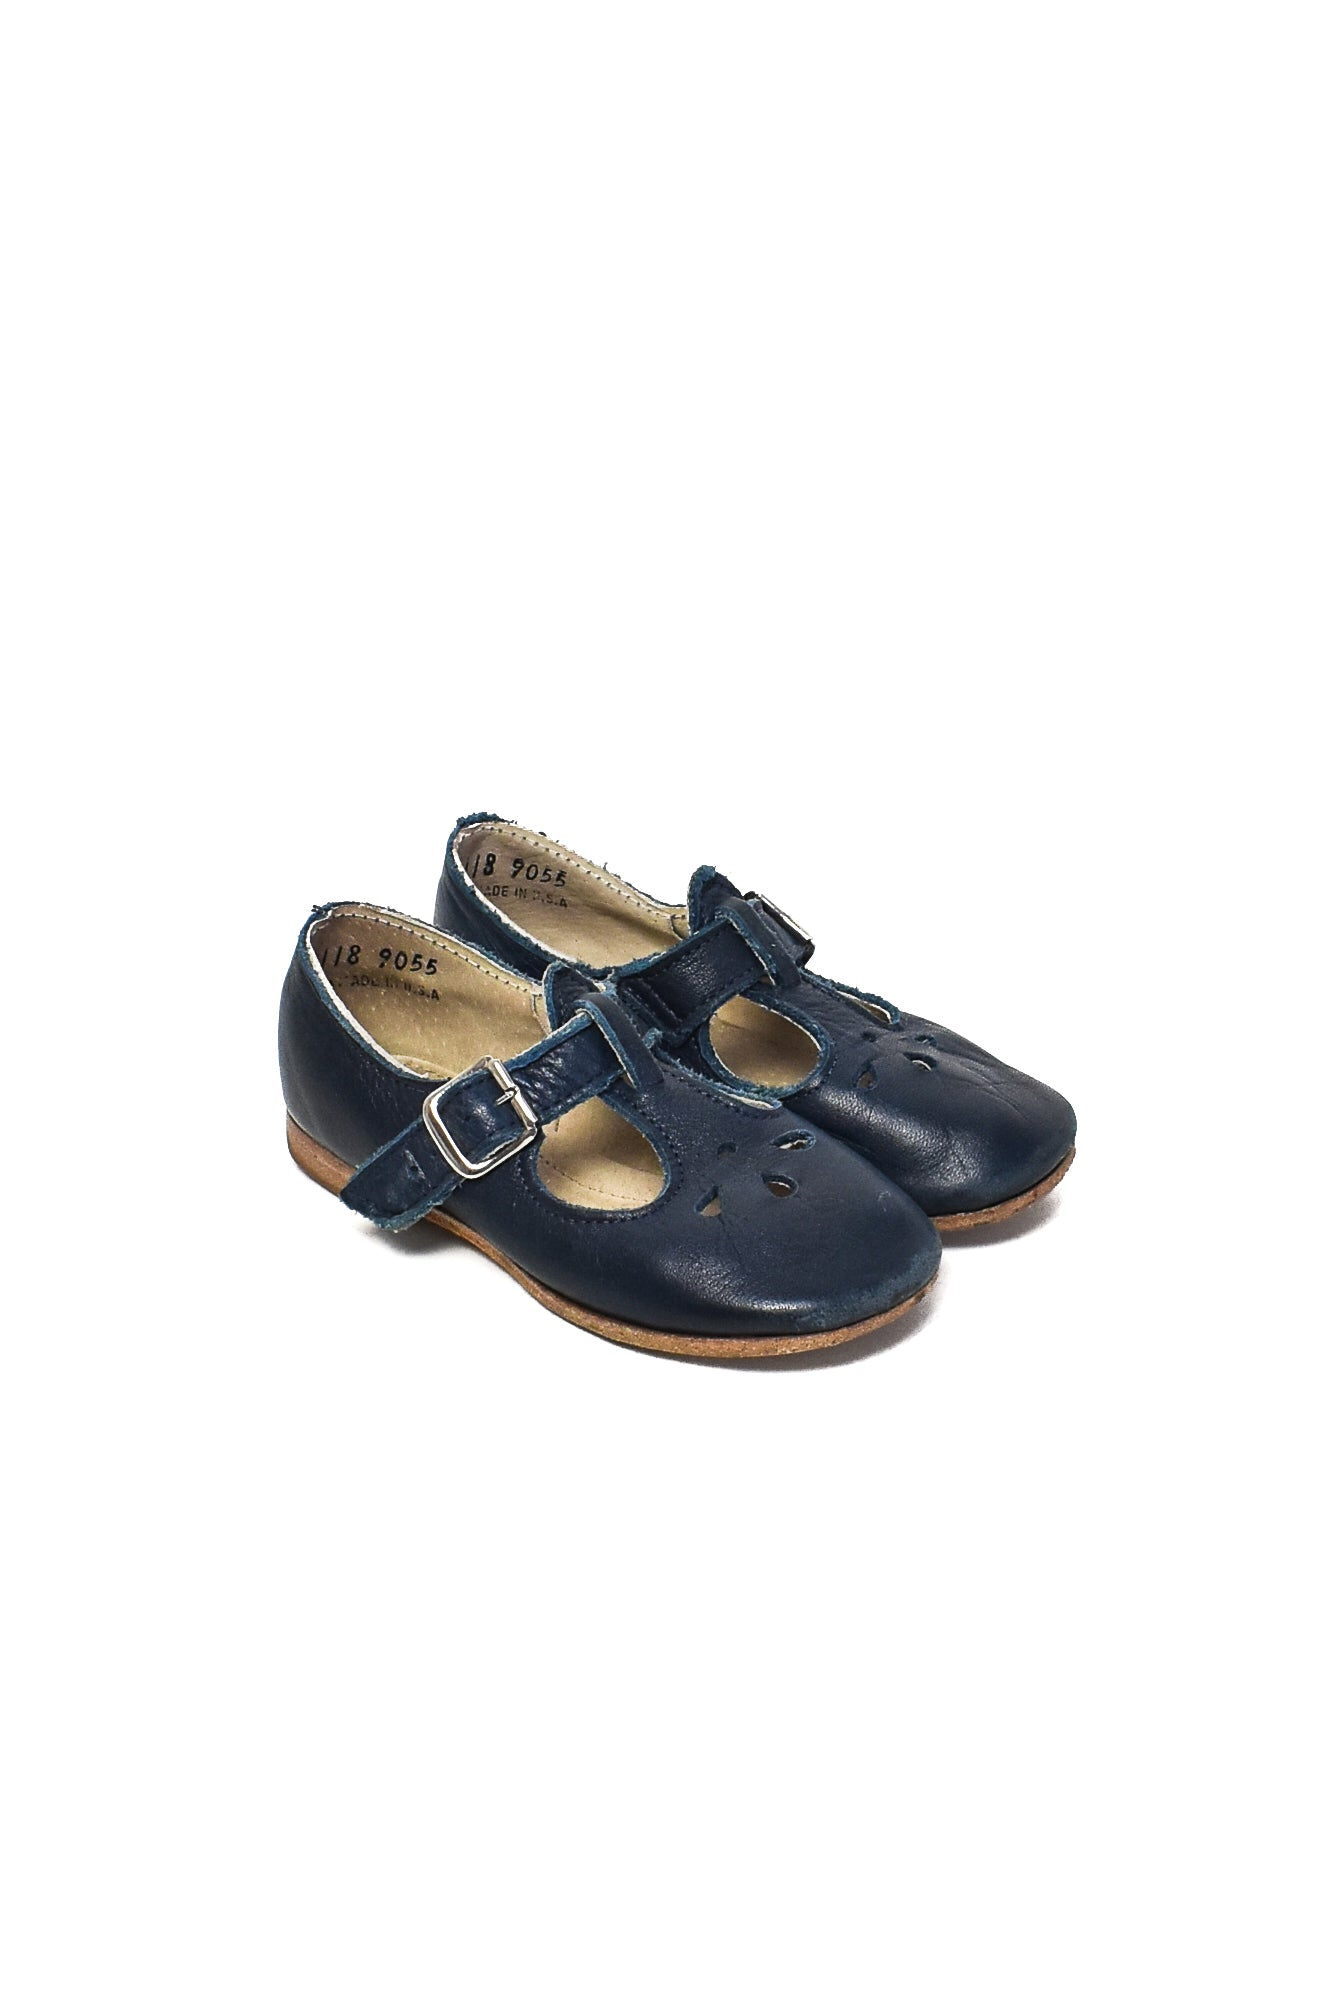 10007253 mabo Kids~ Shoes US 7 at Retykle